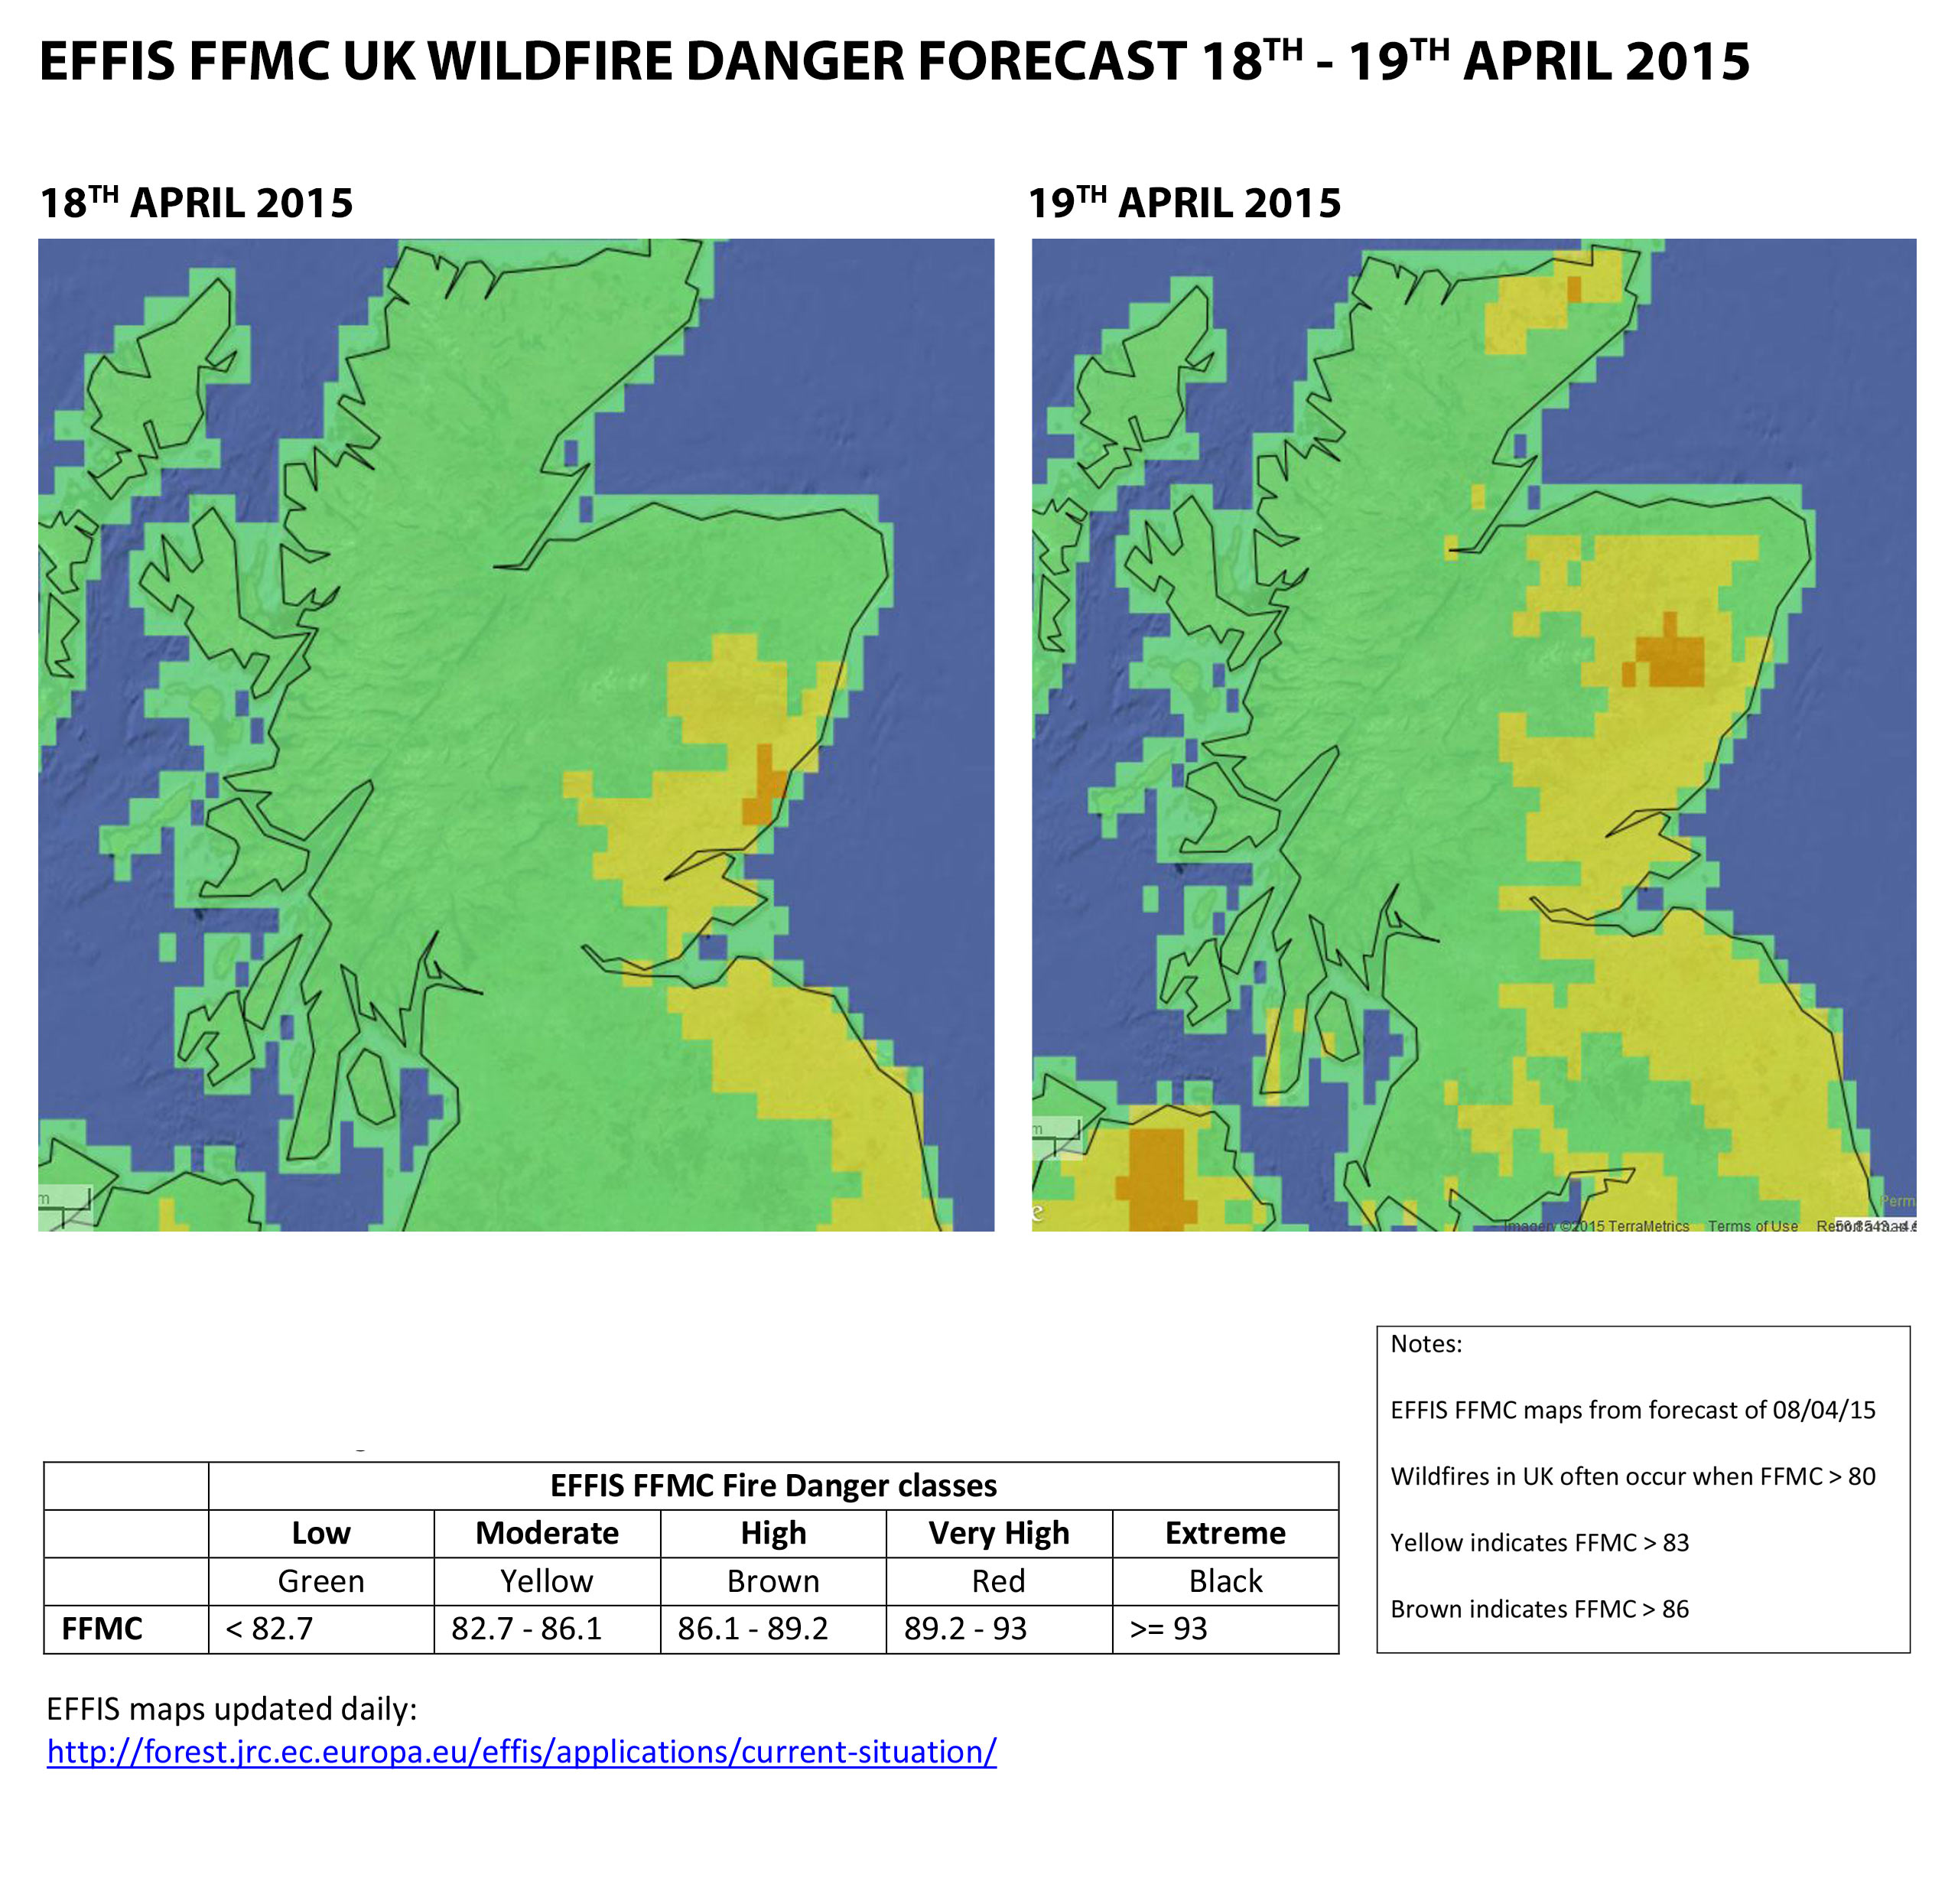 SFRS and Scottish Wildfire Forum extend wildfire warning, particularly in East